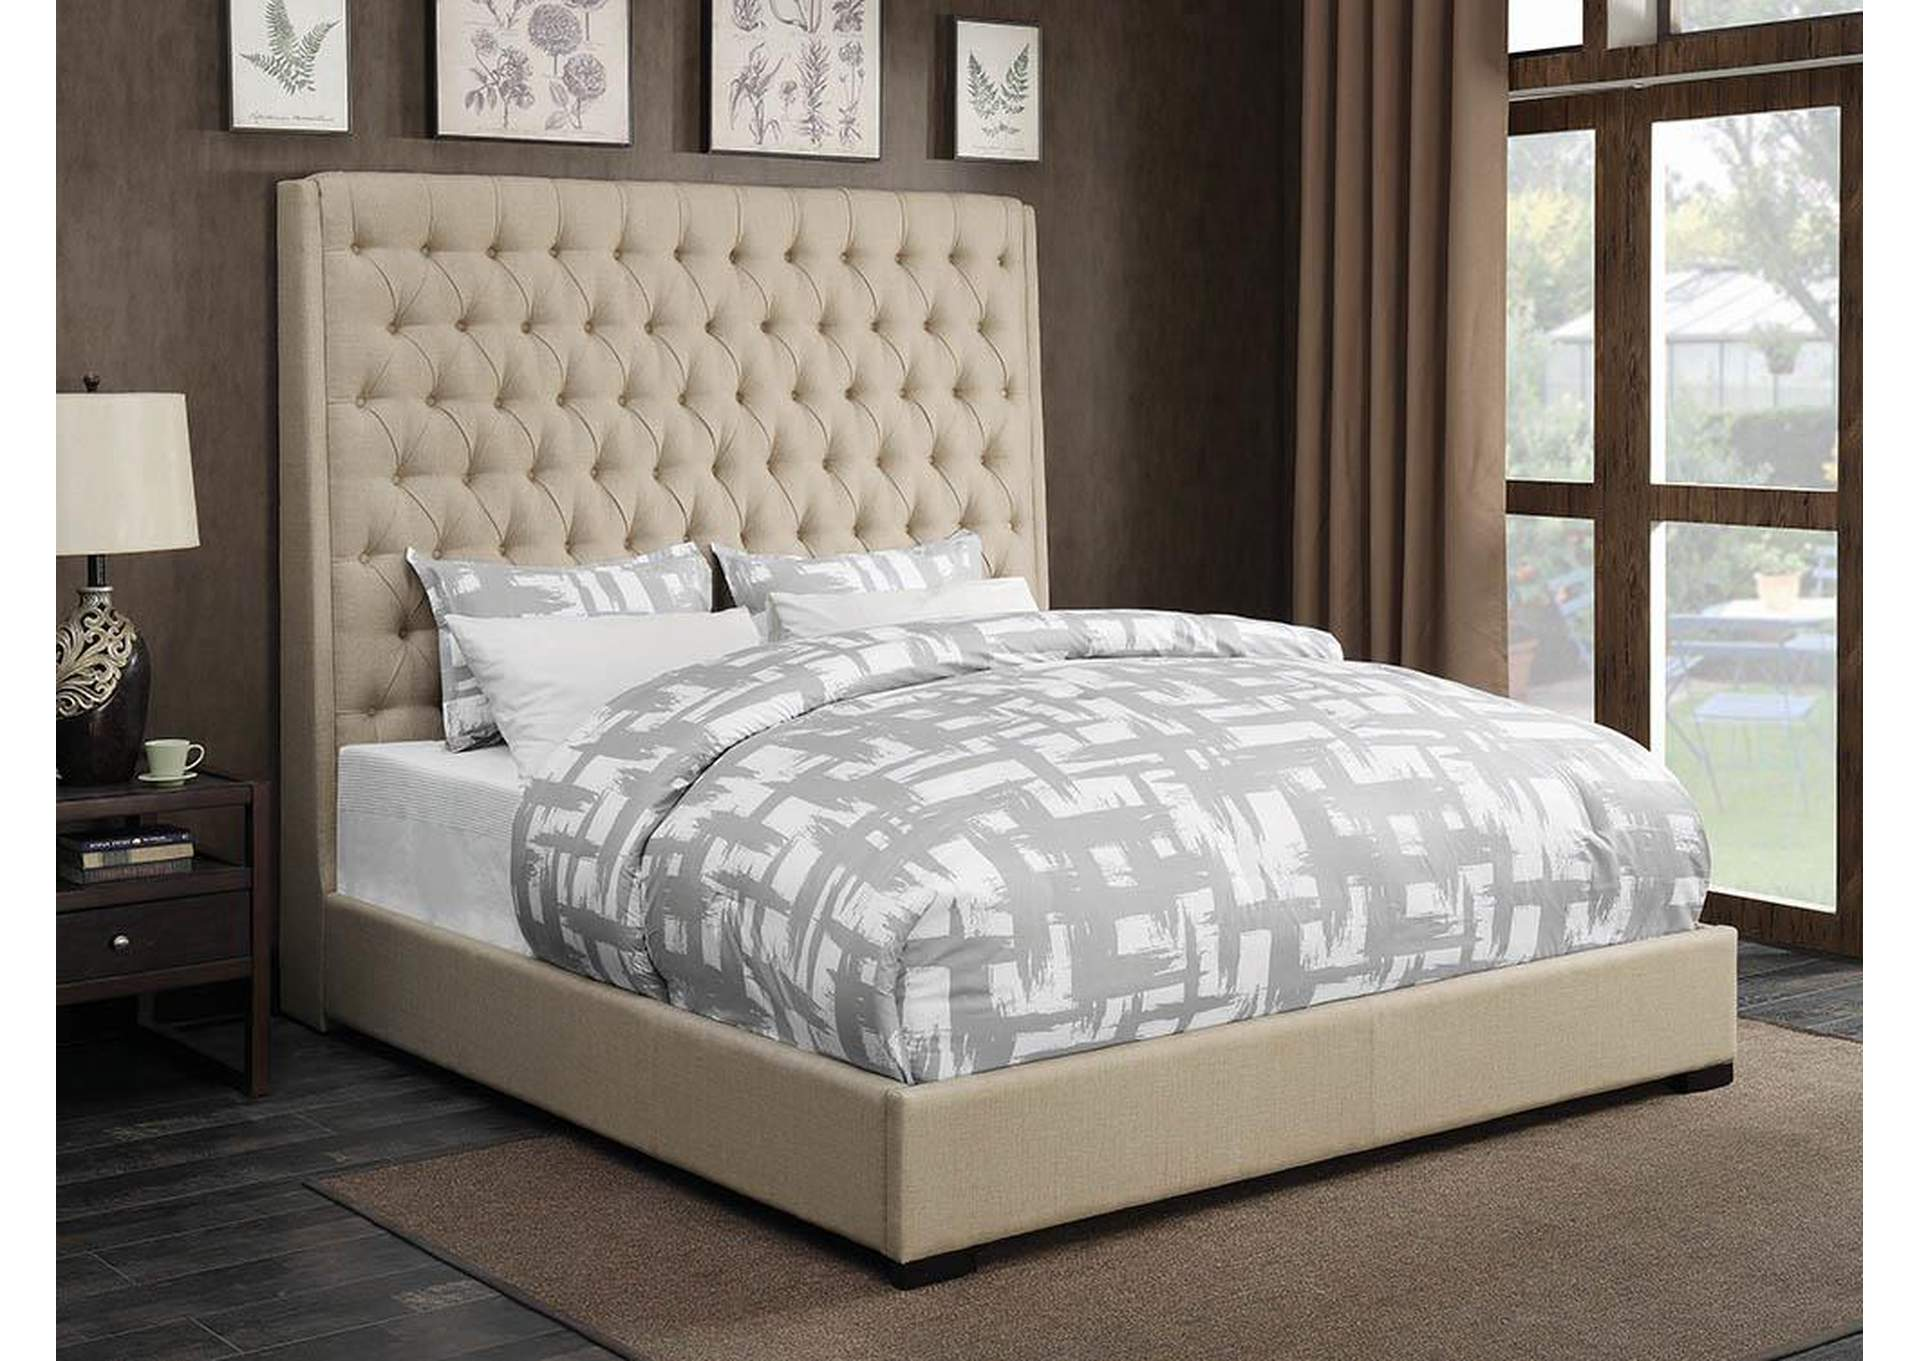 Camille Cream Upholstered Queen Platform Bed,Coaster Furniture